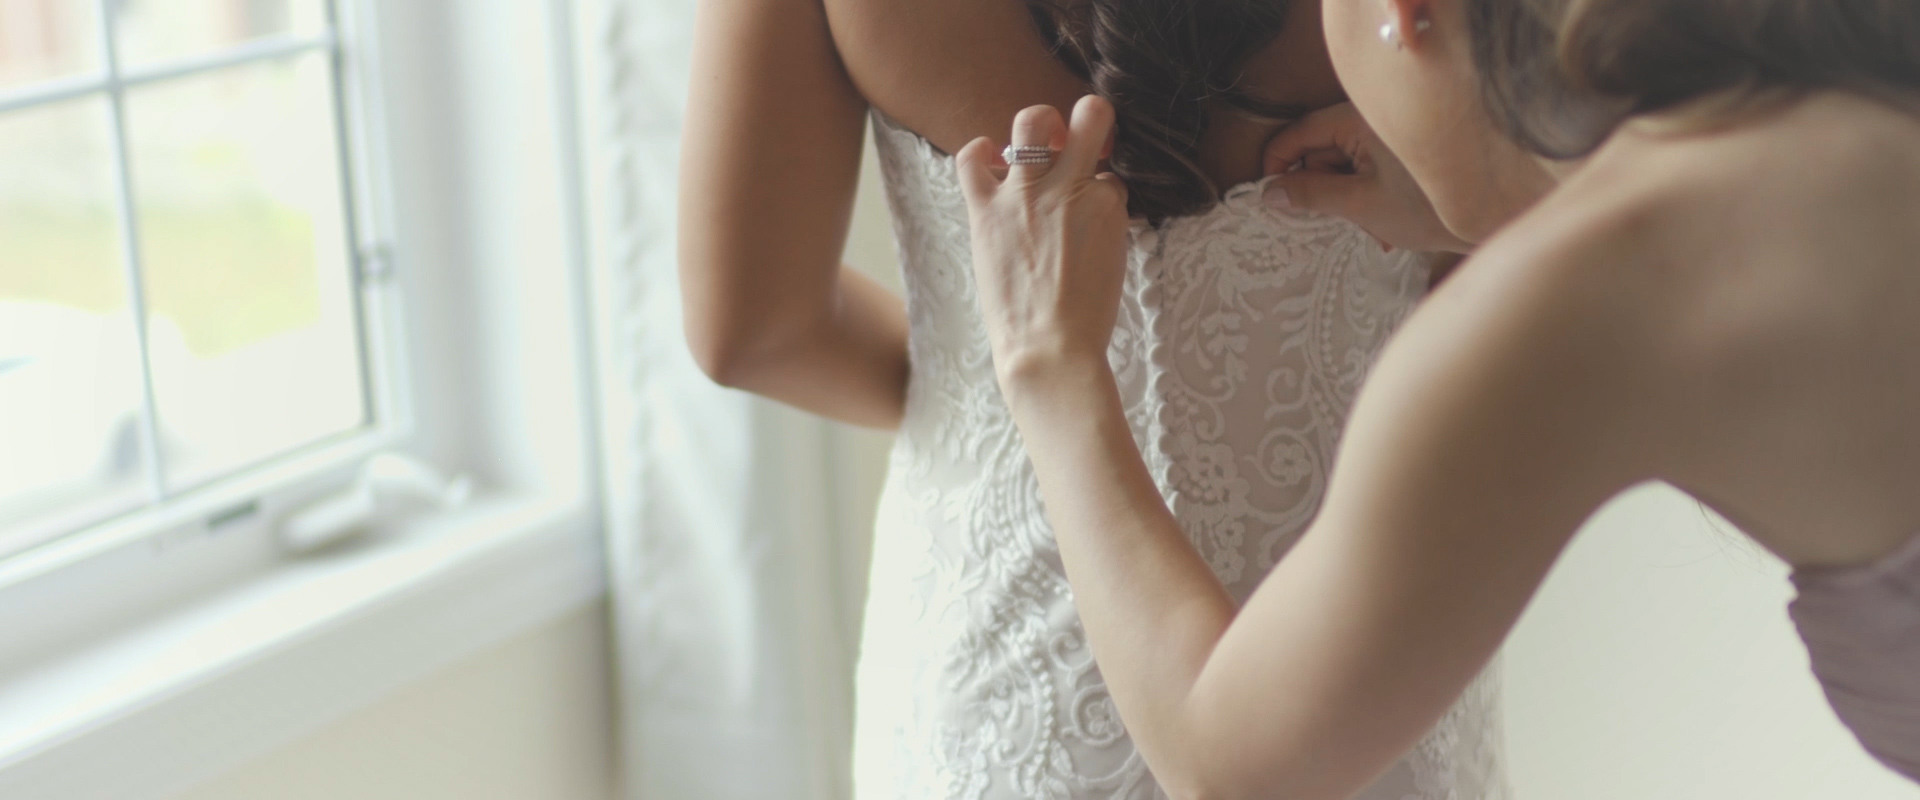 An image of a bridesmaid helping her bride with her dress on her wedding day; taken from a Toronto Wedding Video